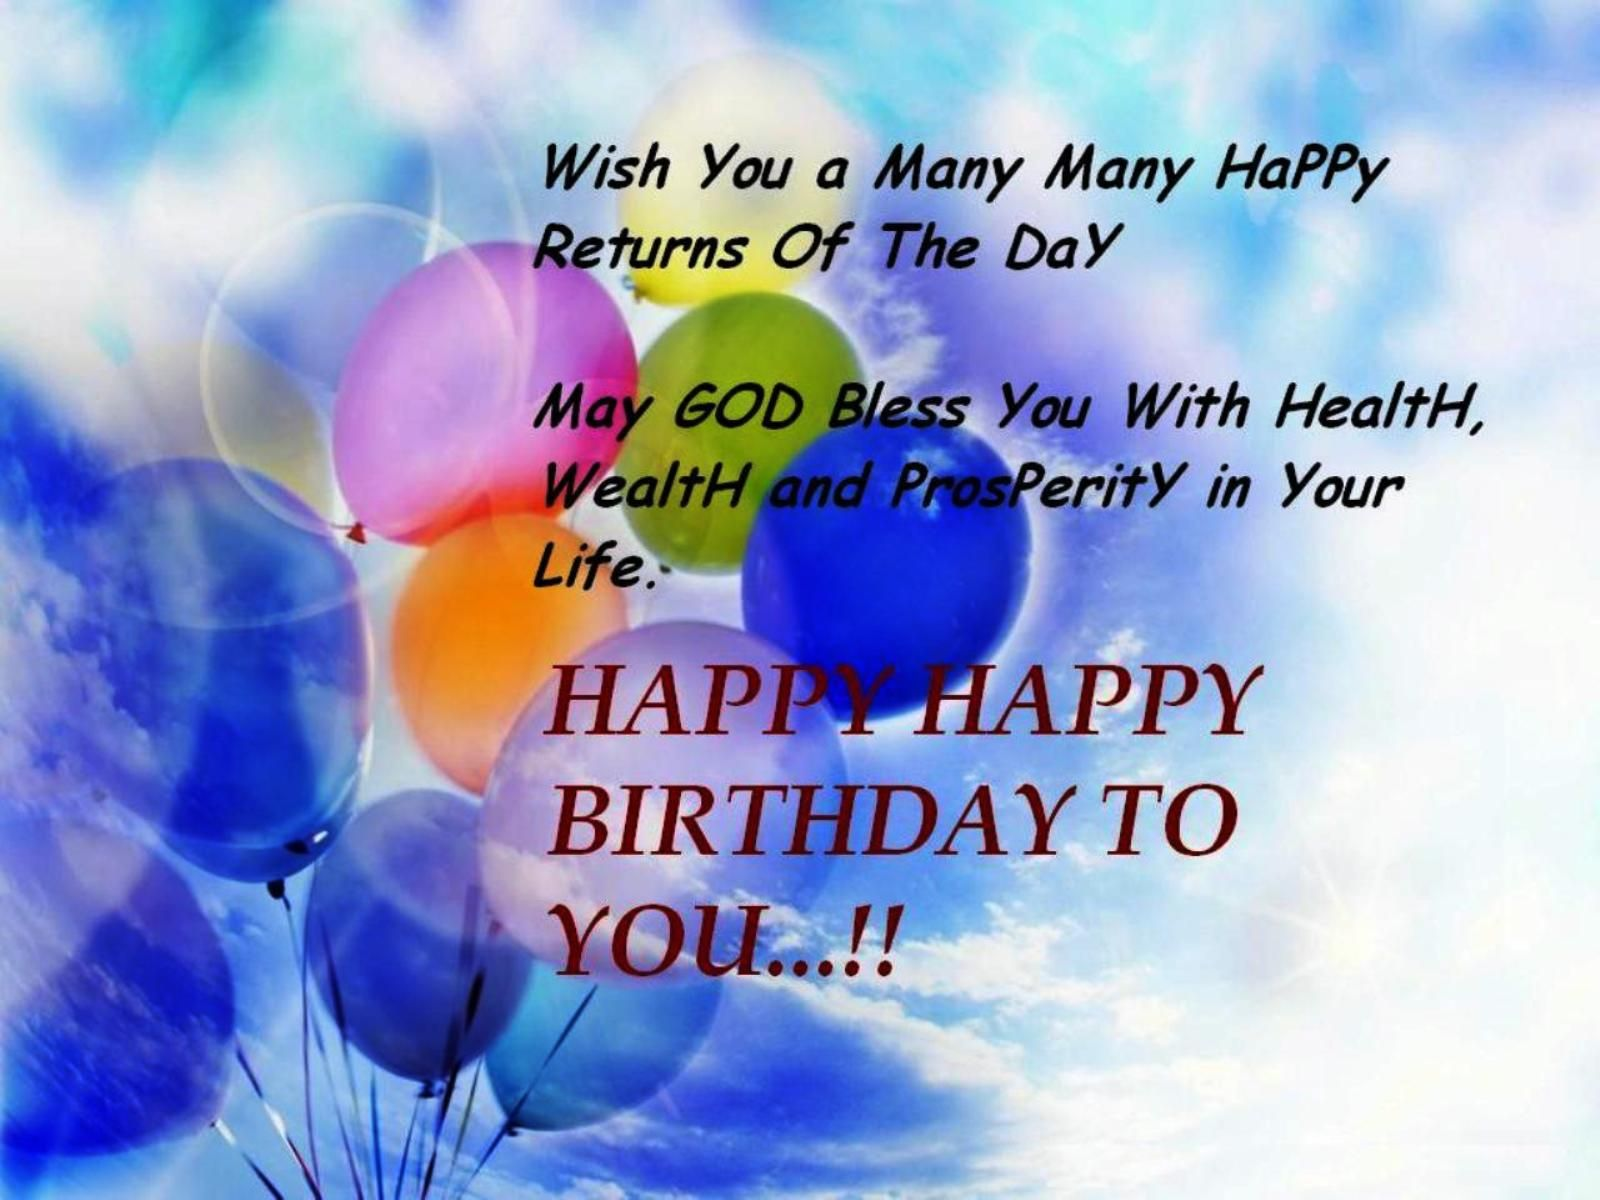 birthday wishes quotes ; 6c748585fdeb88d359ccff8c520acd77